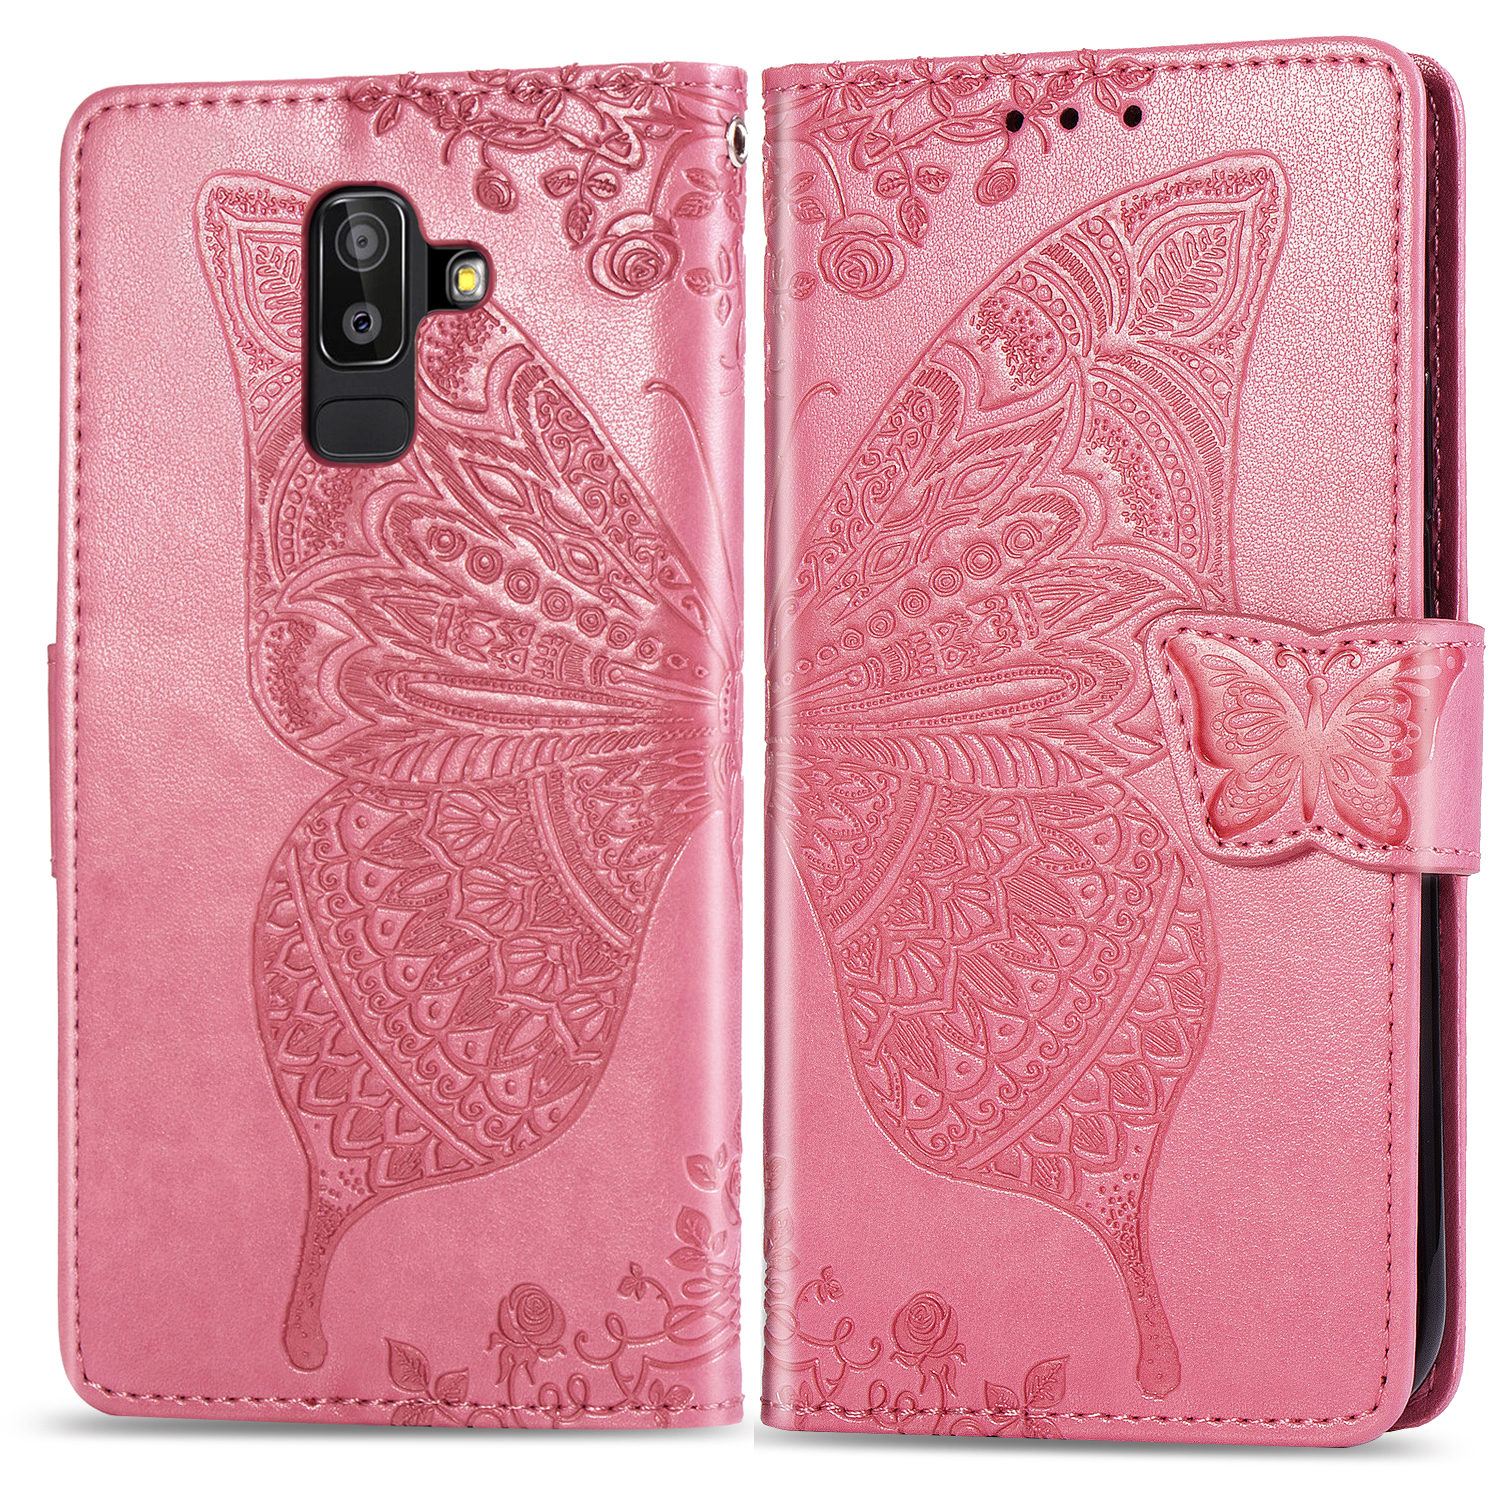 A6 Plus Case sFor Samsung Galaxy A6 Plus Luxury PU Leather Cover Coque For Samsung Galaxy A6 Plus + Book Style Protection Card